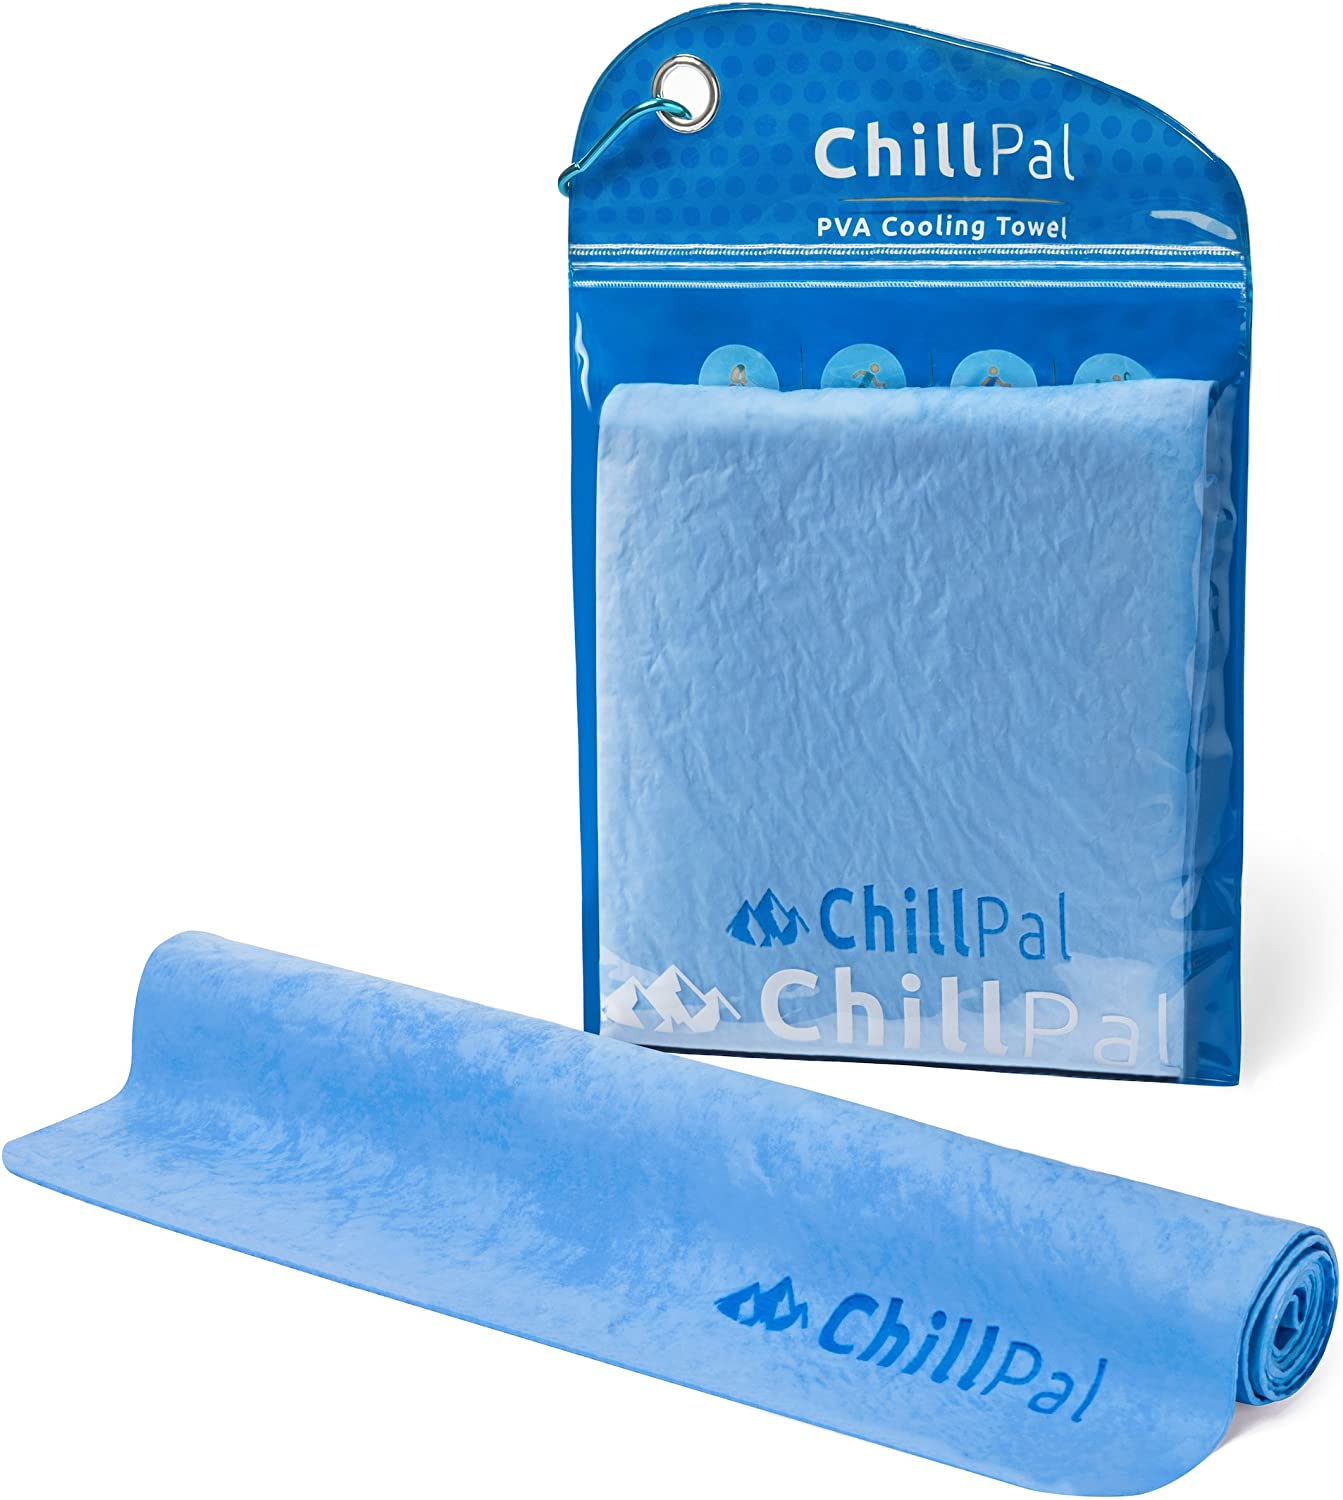 Chill Pal PVA Cooling Towel